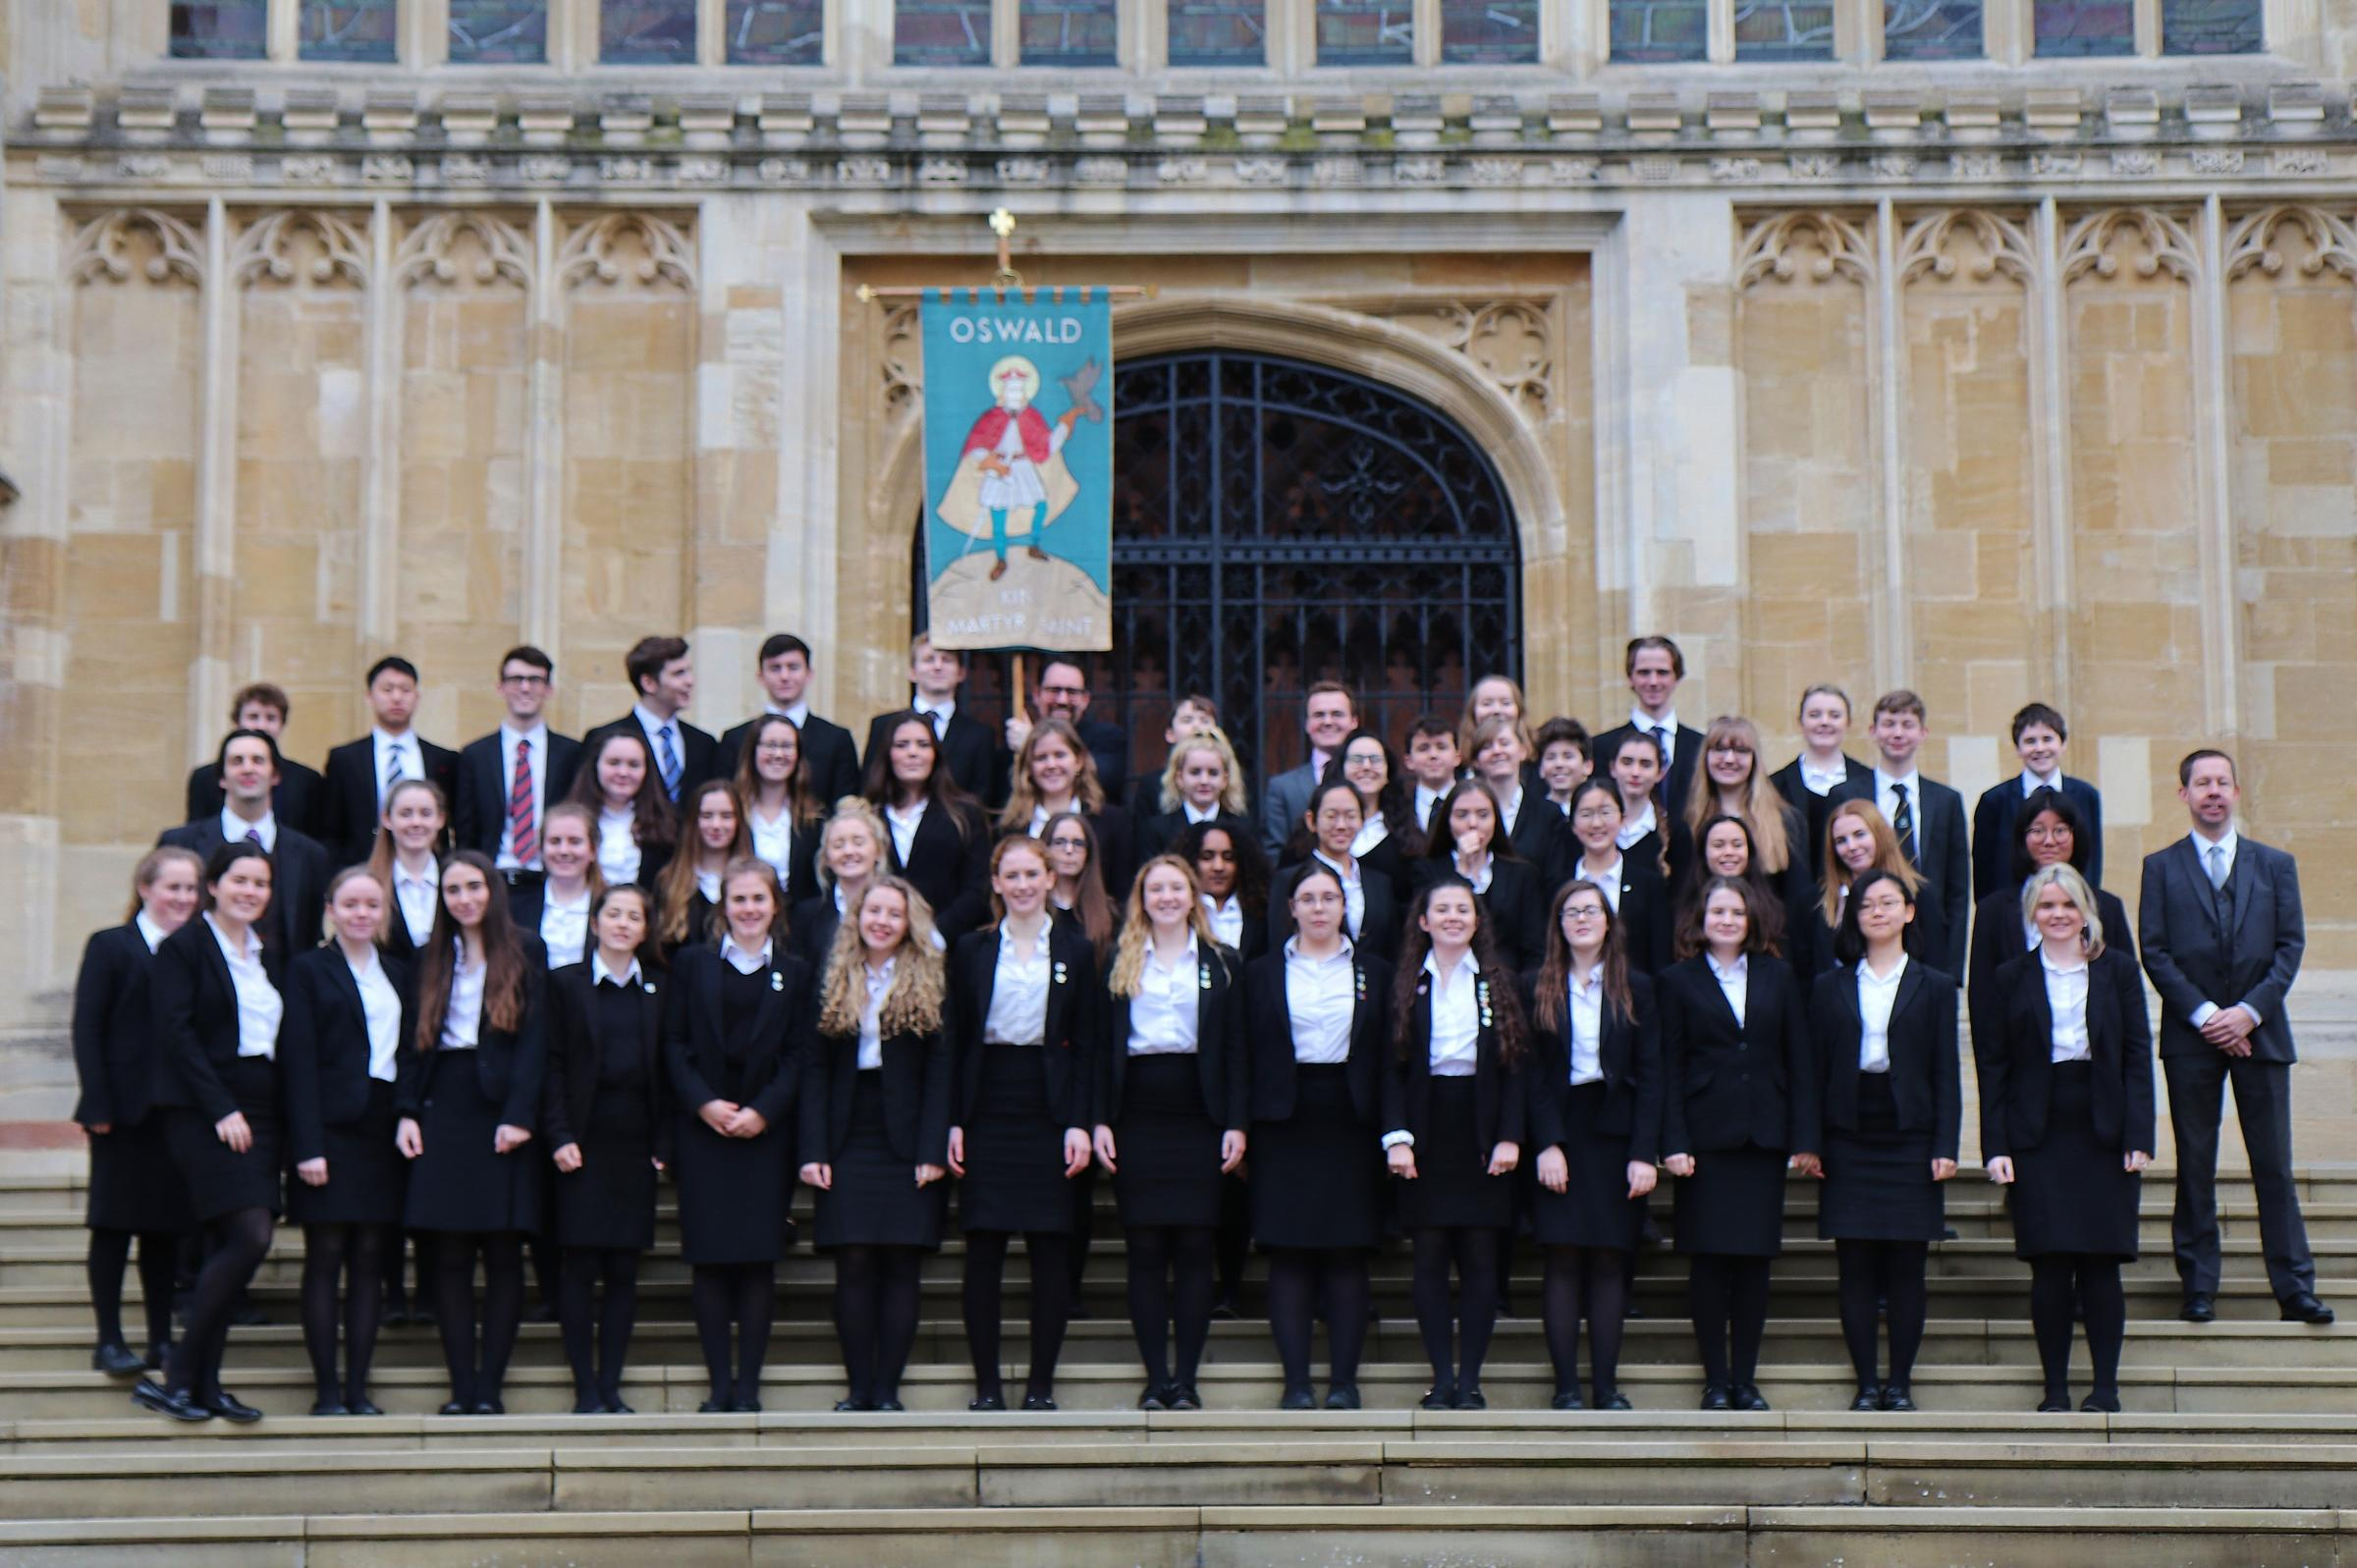 The choir at the West Door of St George's Chapel in Windsor